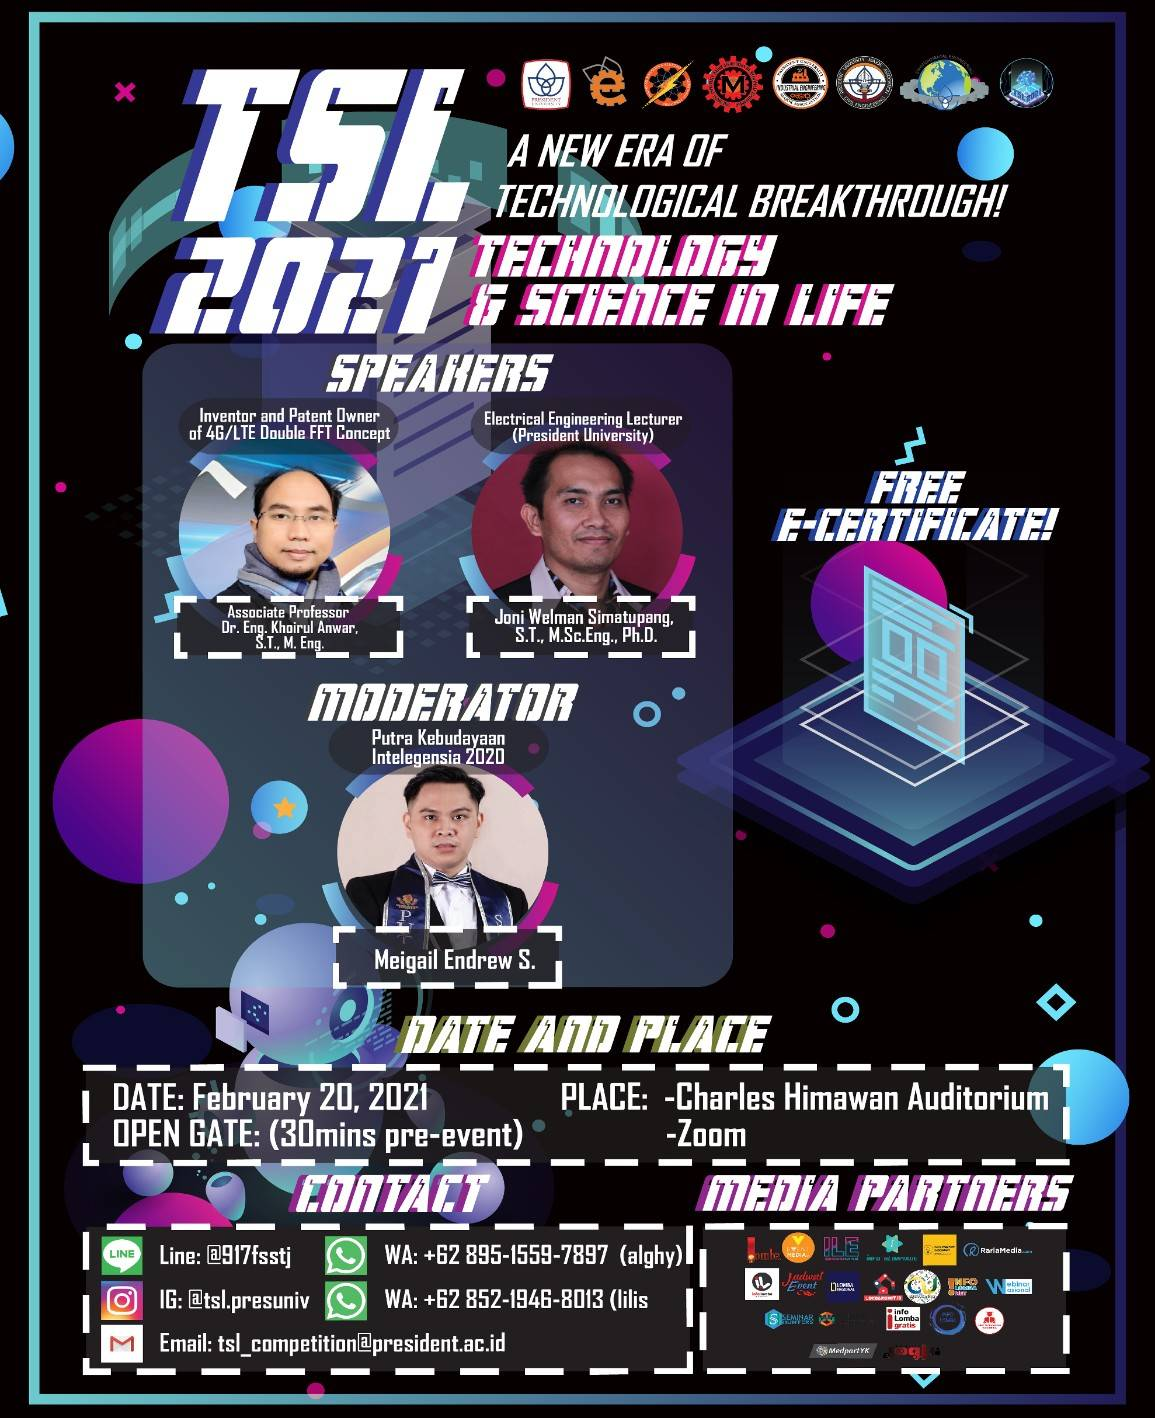 Webinar Technology and Science in Life 2021